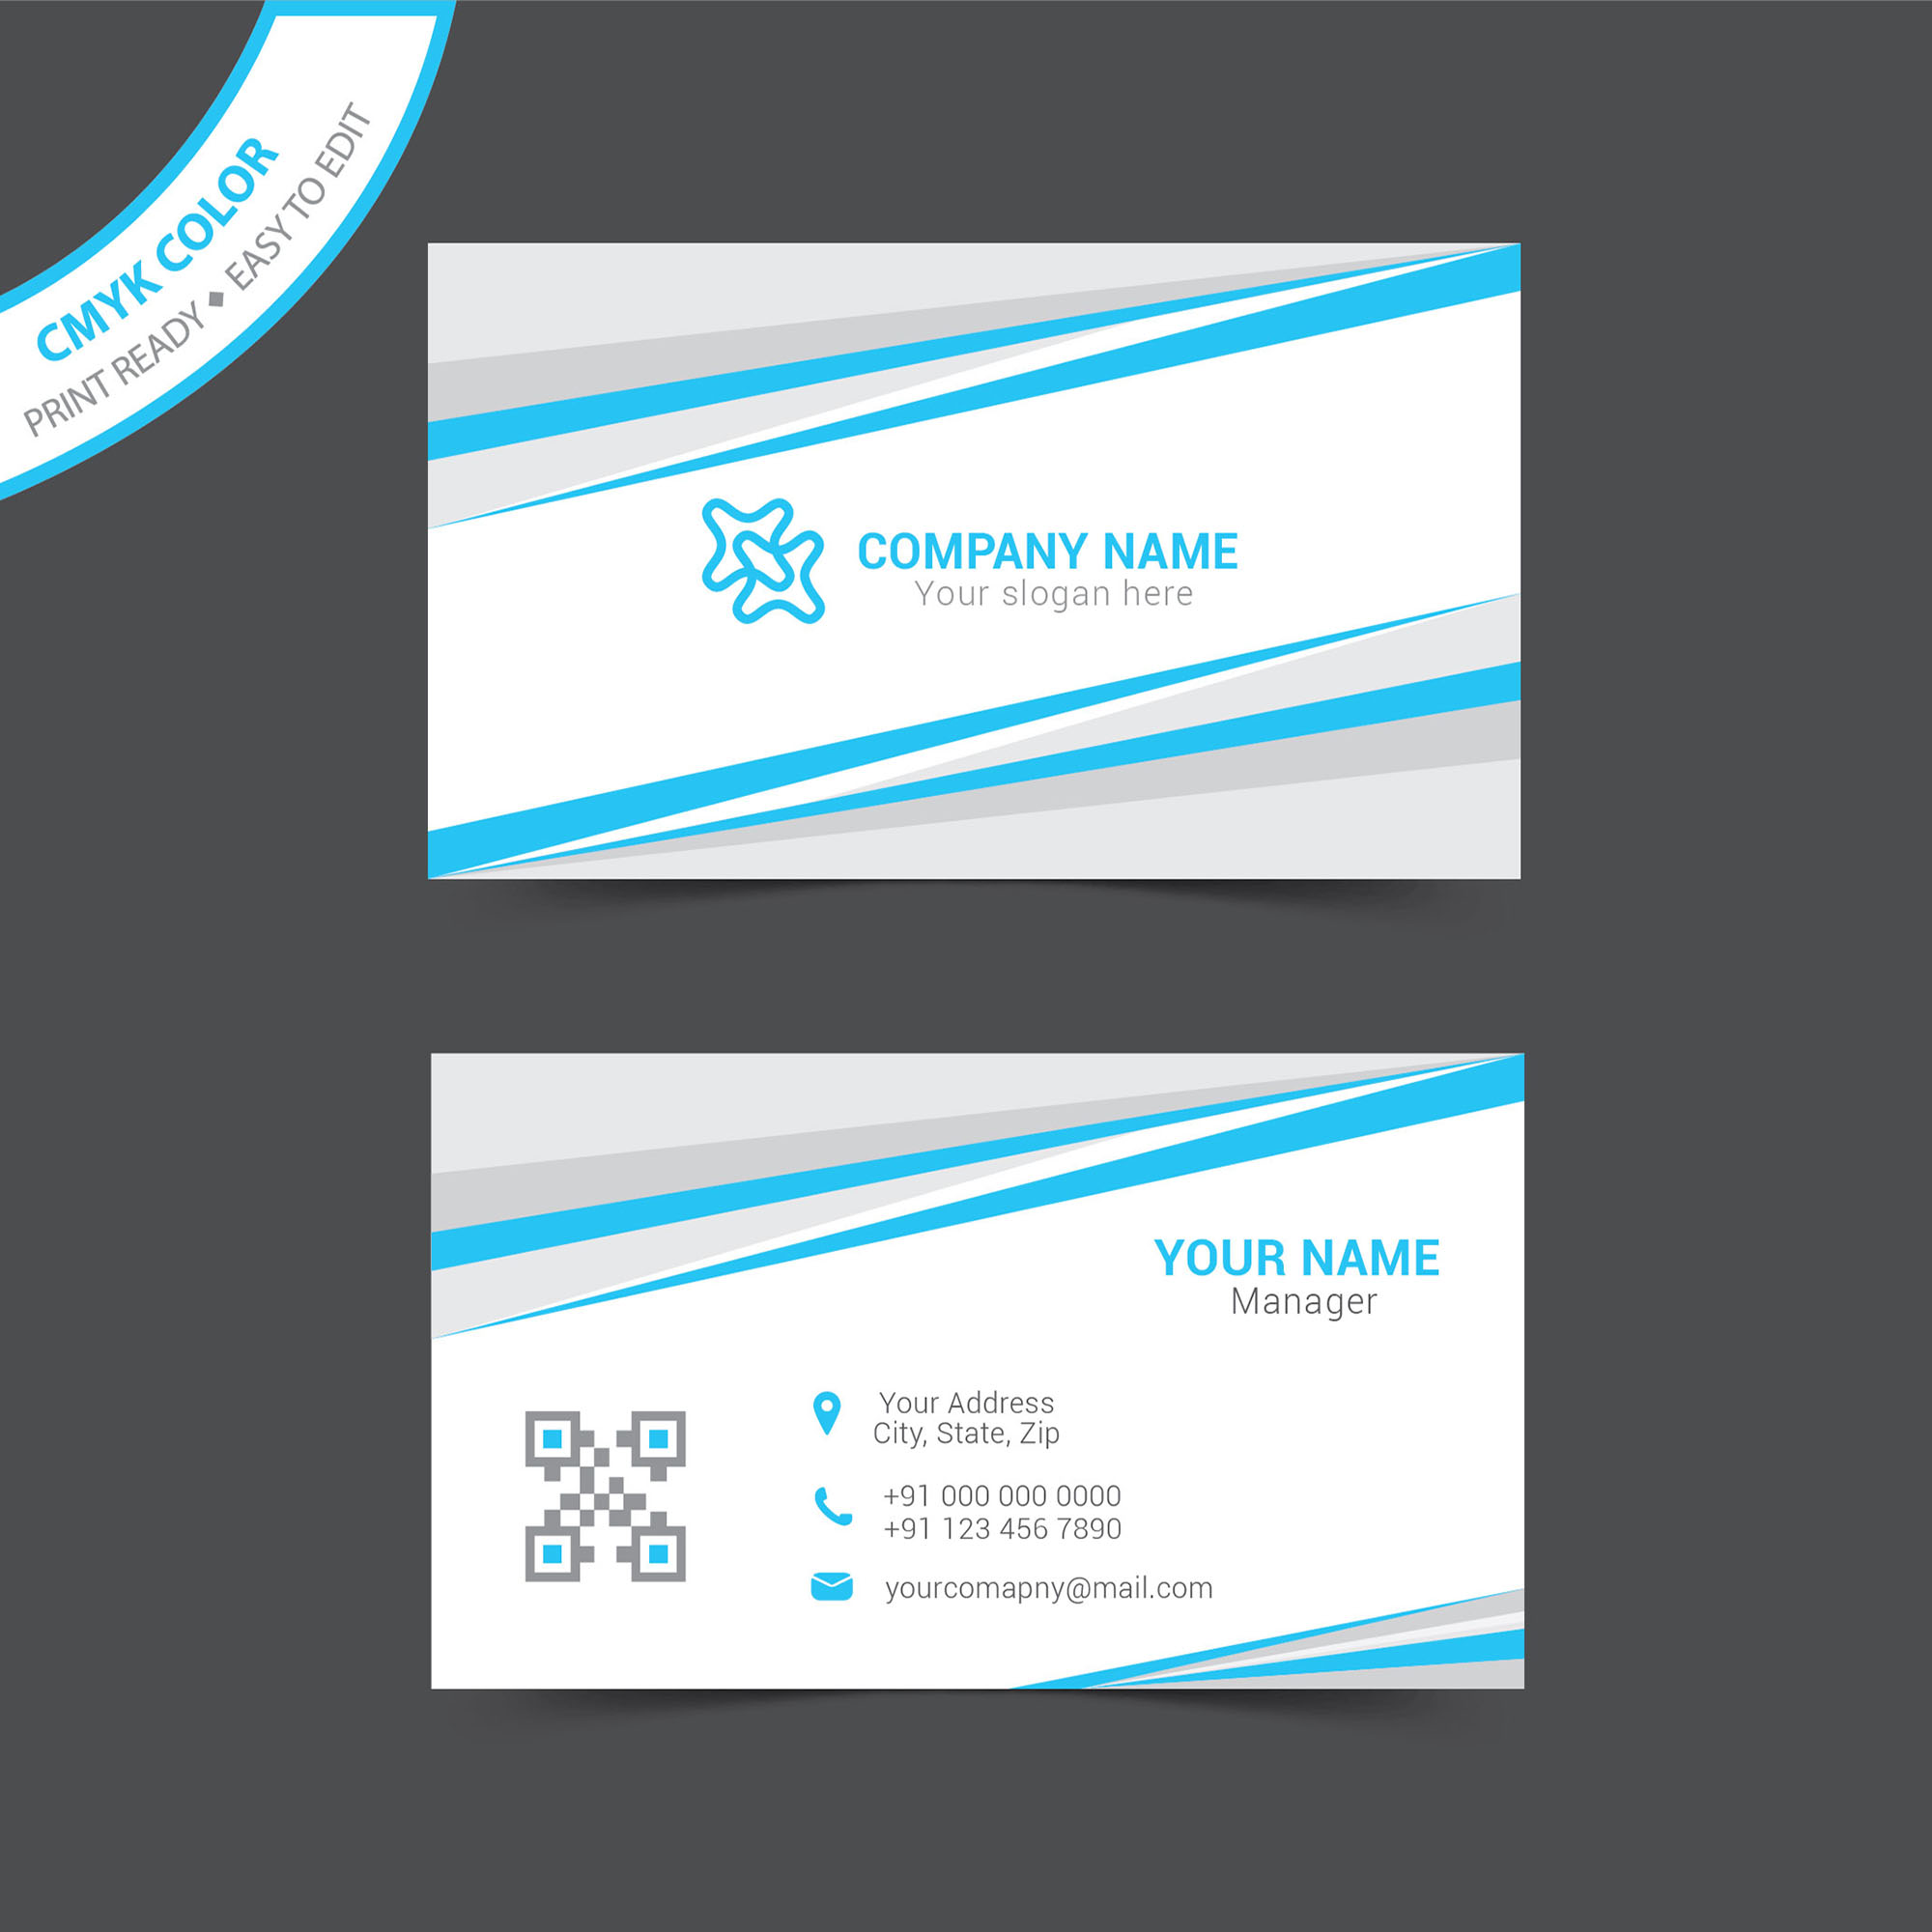 Simple business card template free download - Wisxi.com